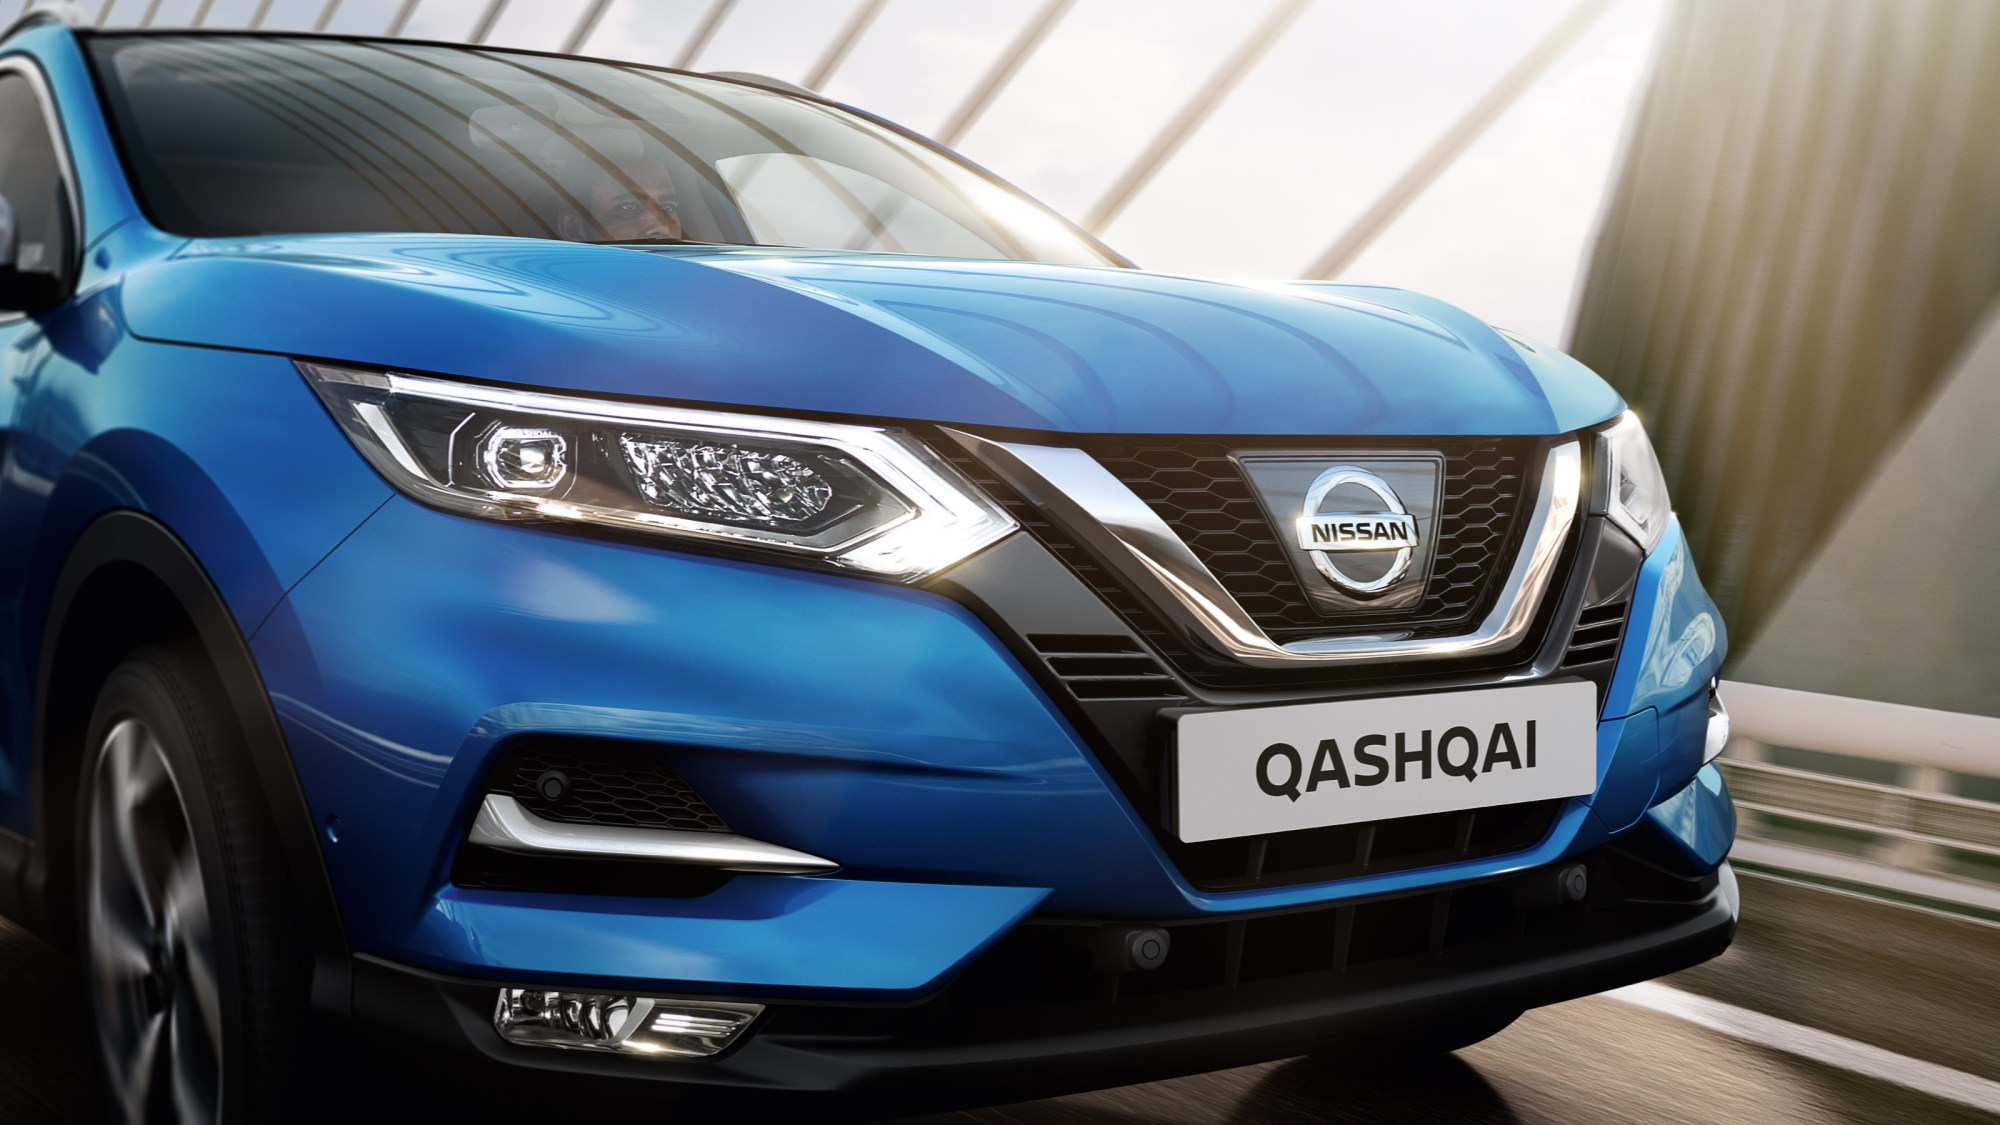 hight resolution of nissan qashqai roulant sur un pont vue de face